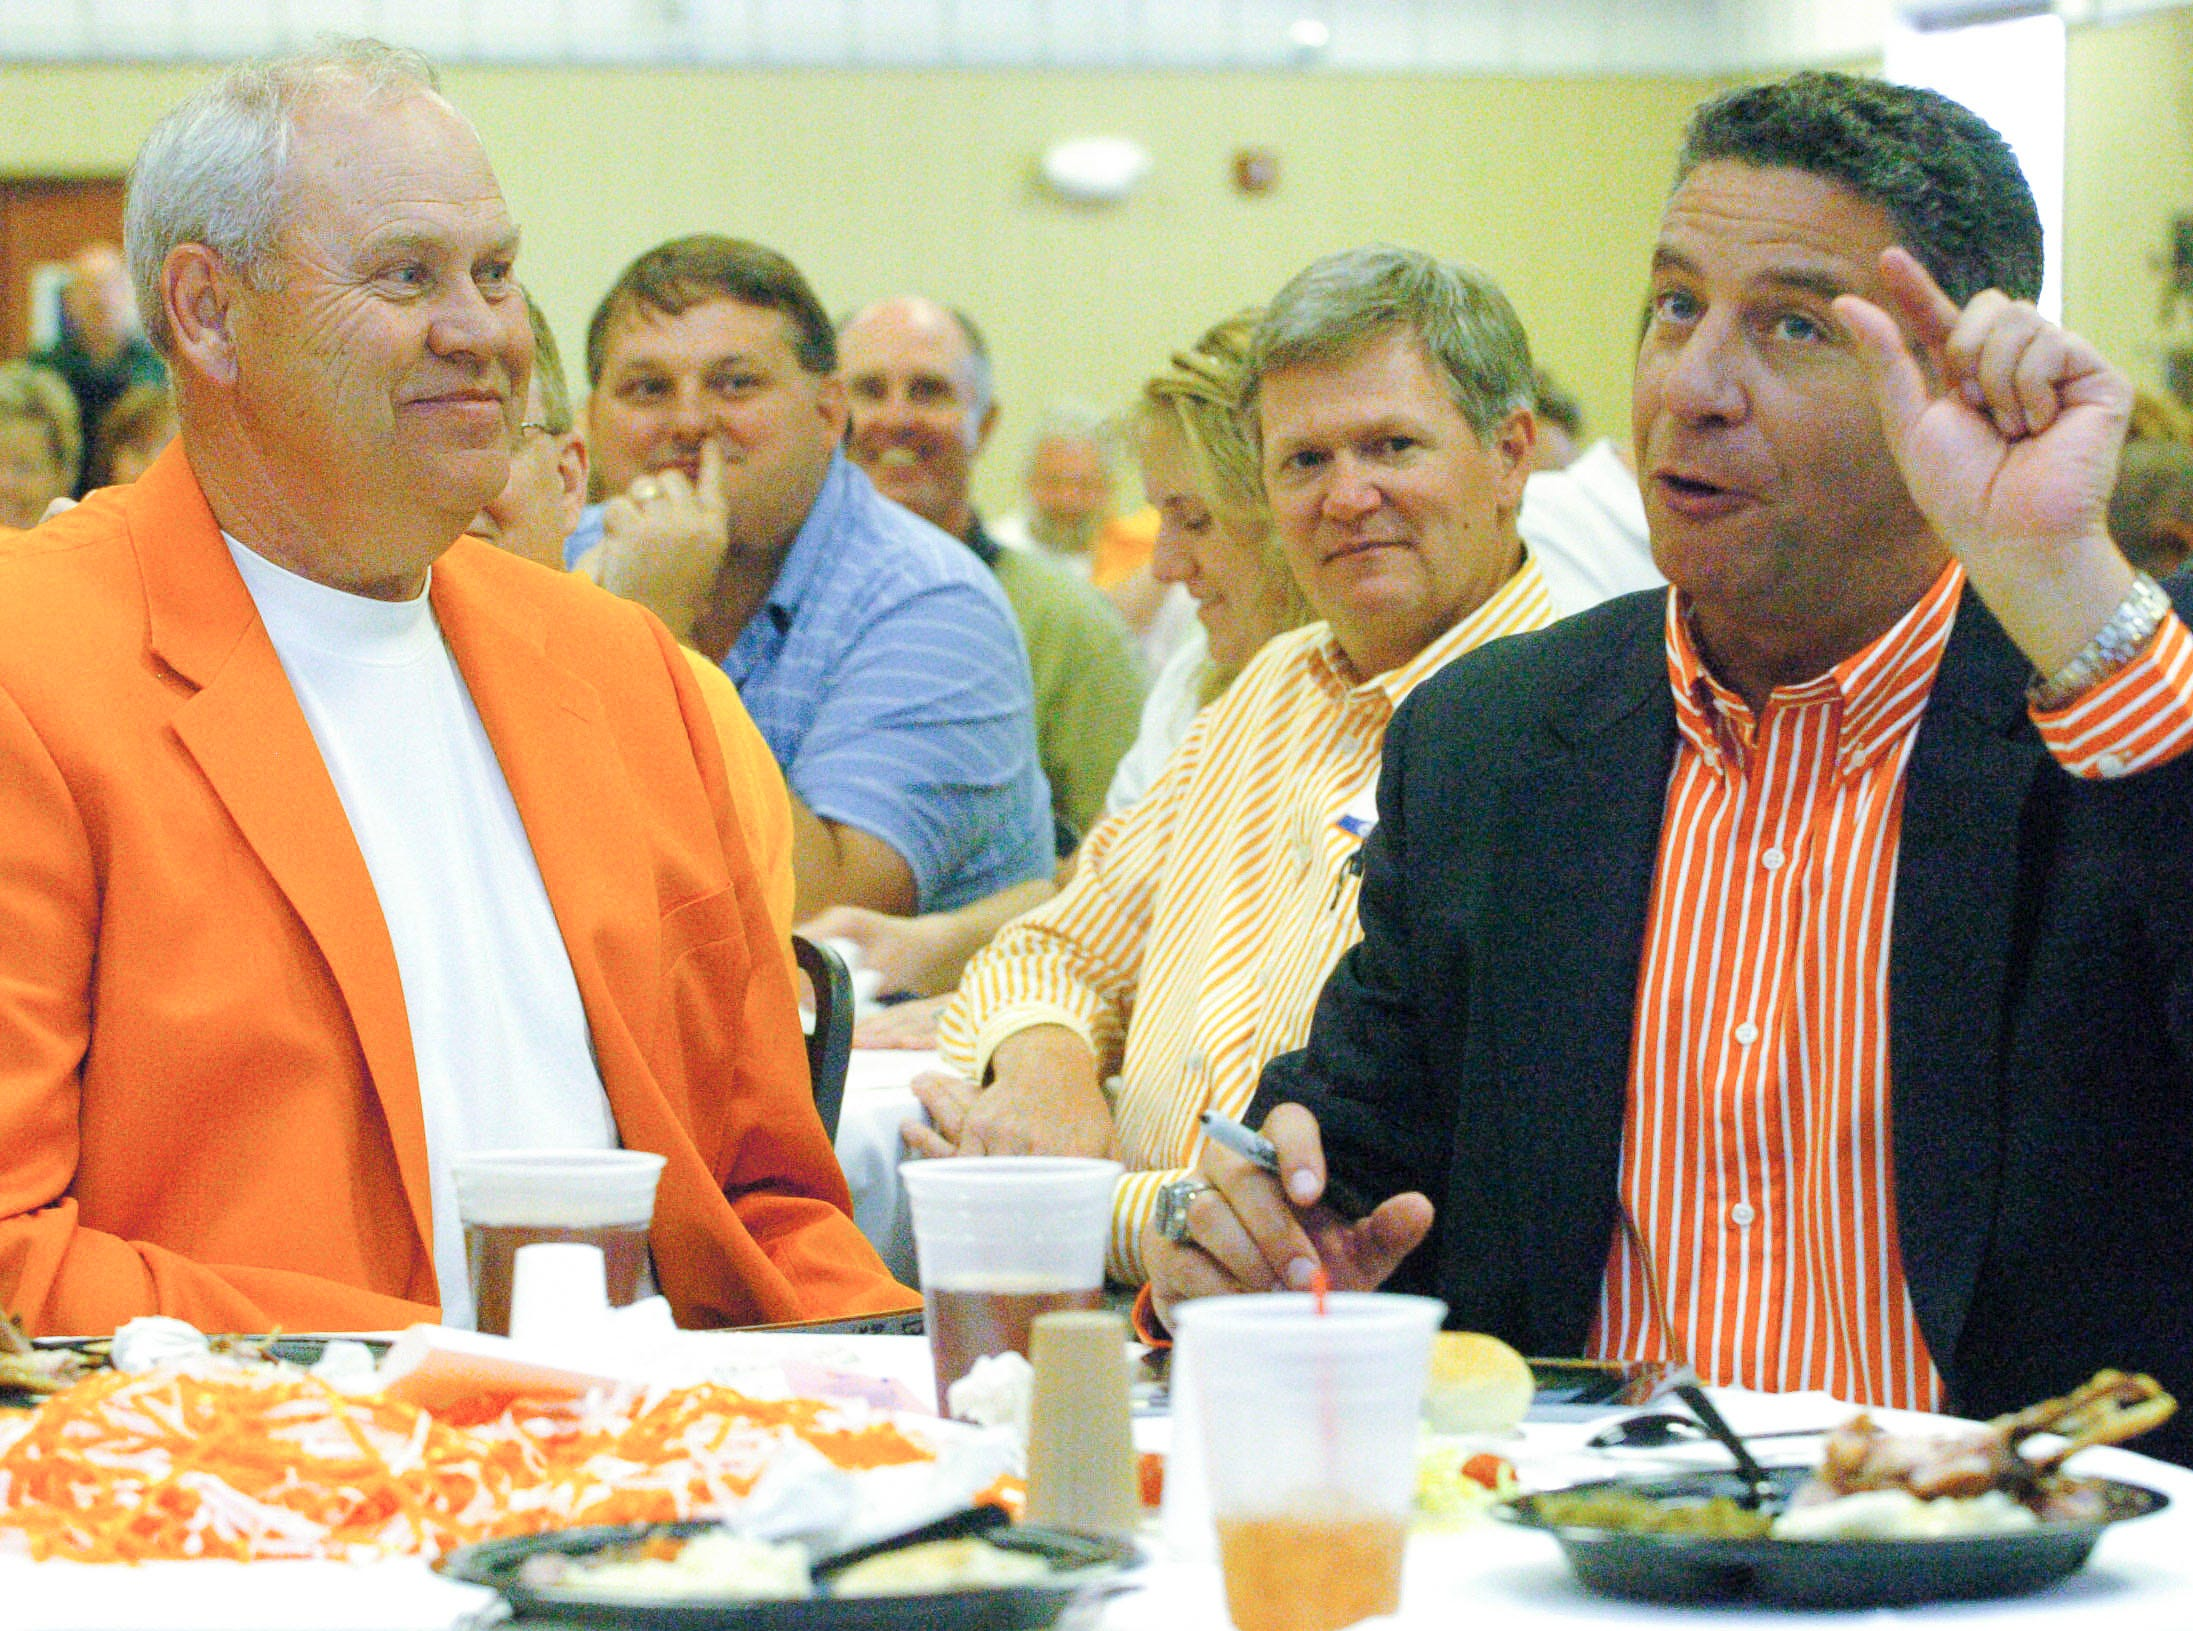 Bruce Pearl's chest-painting stunt at a Lady Vols basketball game last season continued to get chuckles Monday at the Big Orange Caravan stop in Sevierville in 2007 while seated with Phillip Fulmer. Pearl quipped that just a little exposure by him has led to a lot of exposure for Tennessee.